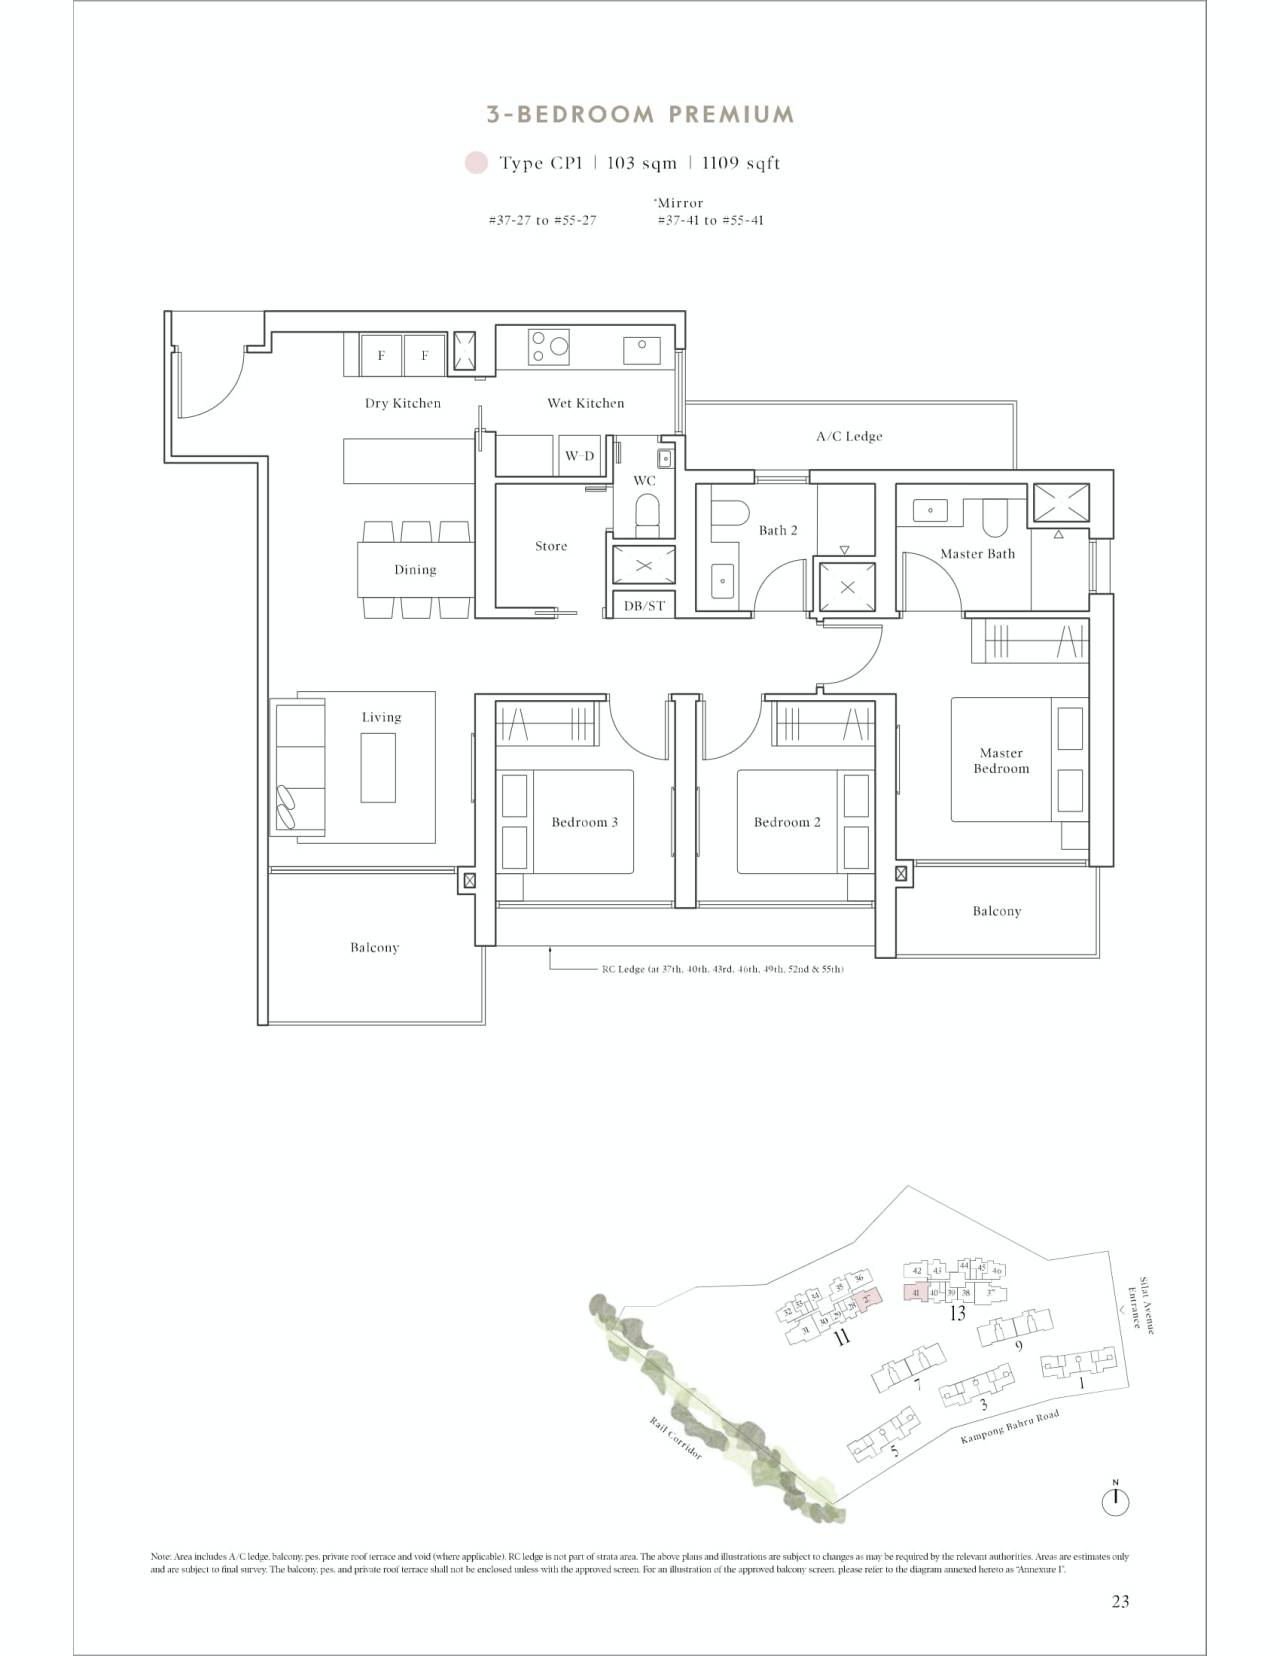 Avenue South Residence Typical 3 Bedroom Premium